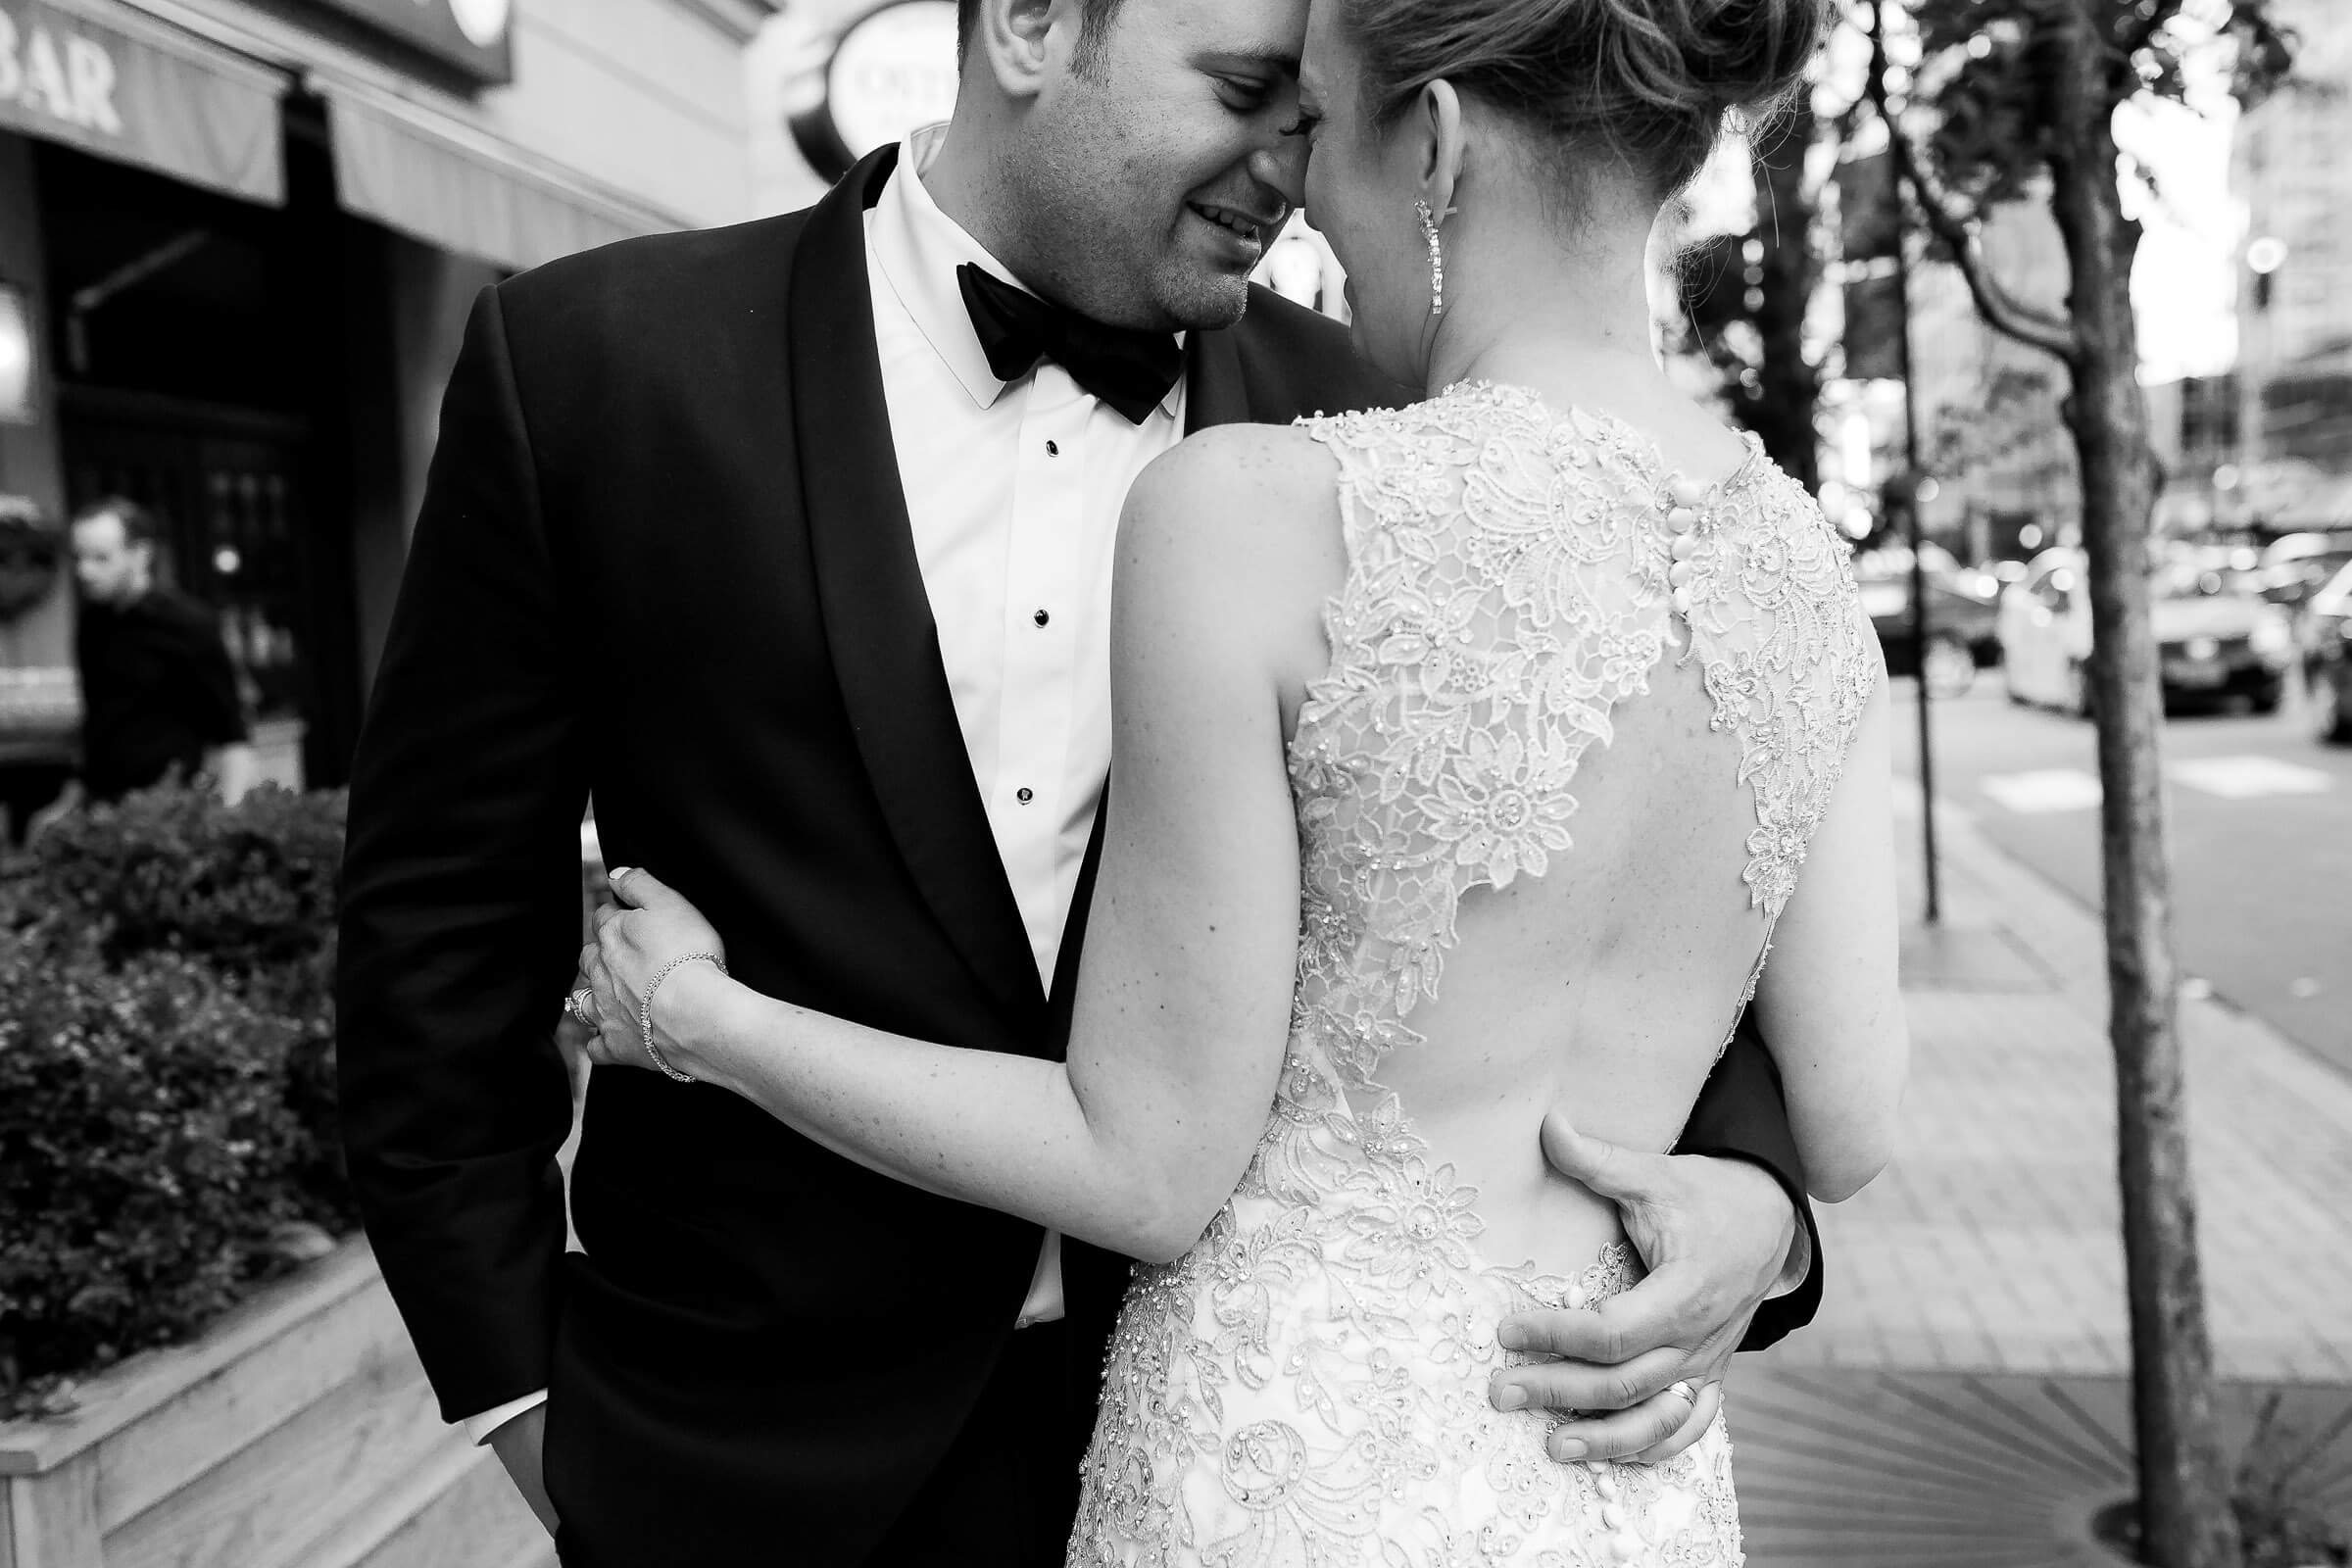 Elle Rose Photo Modern Day Wedding Photography - Guy gets professional photoshoot with his cat engagement photos